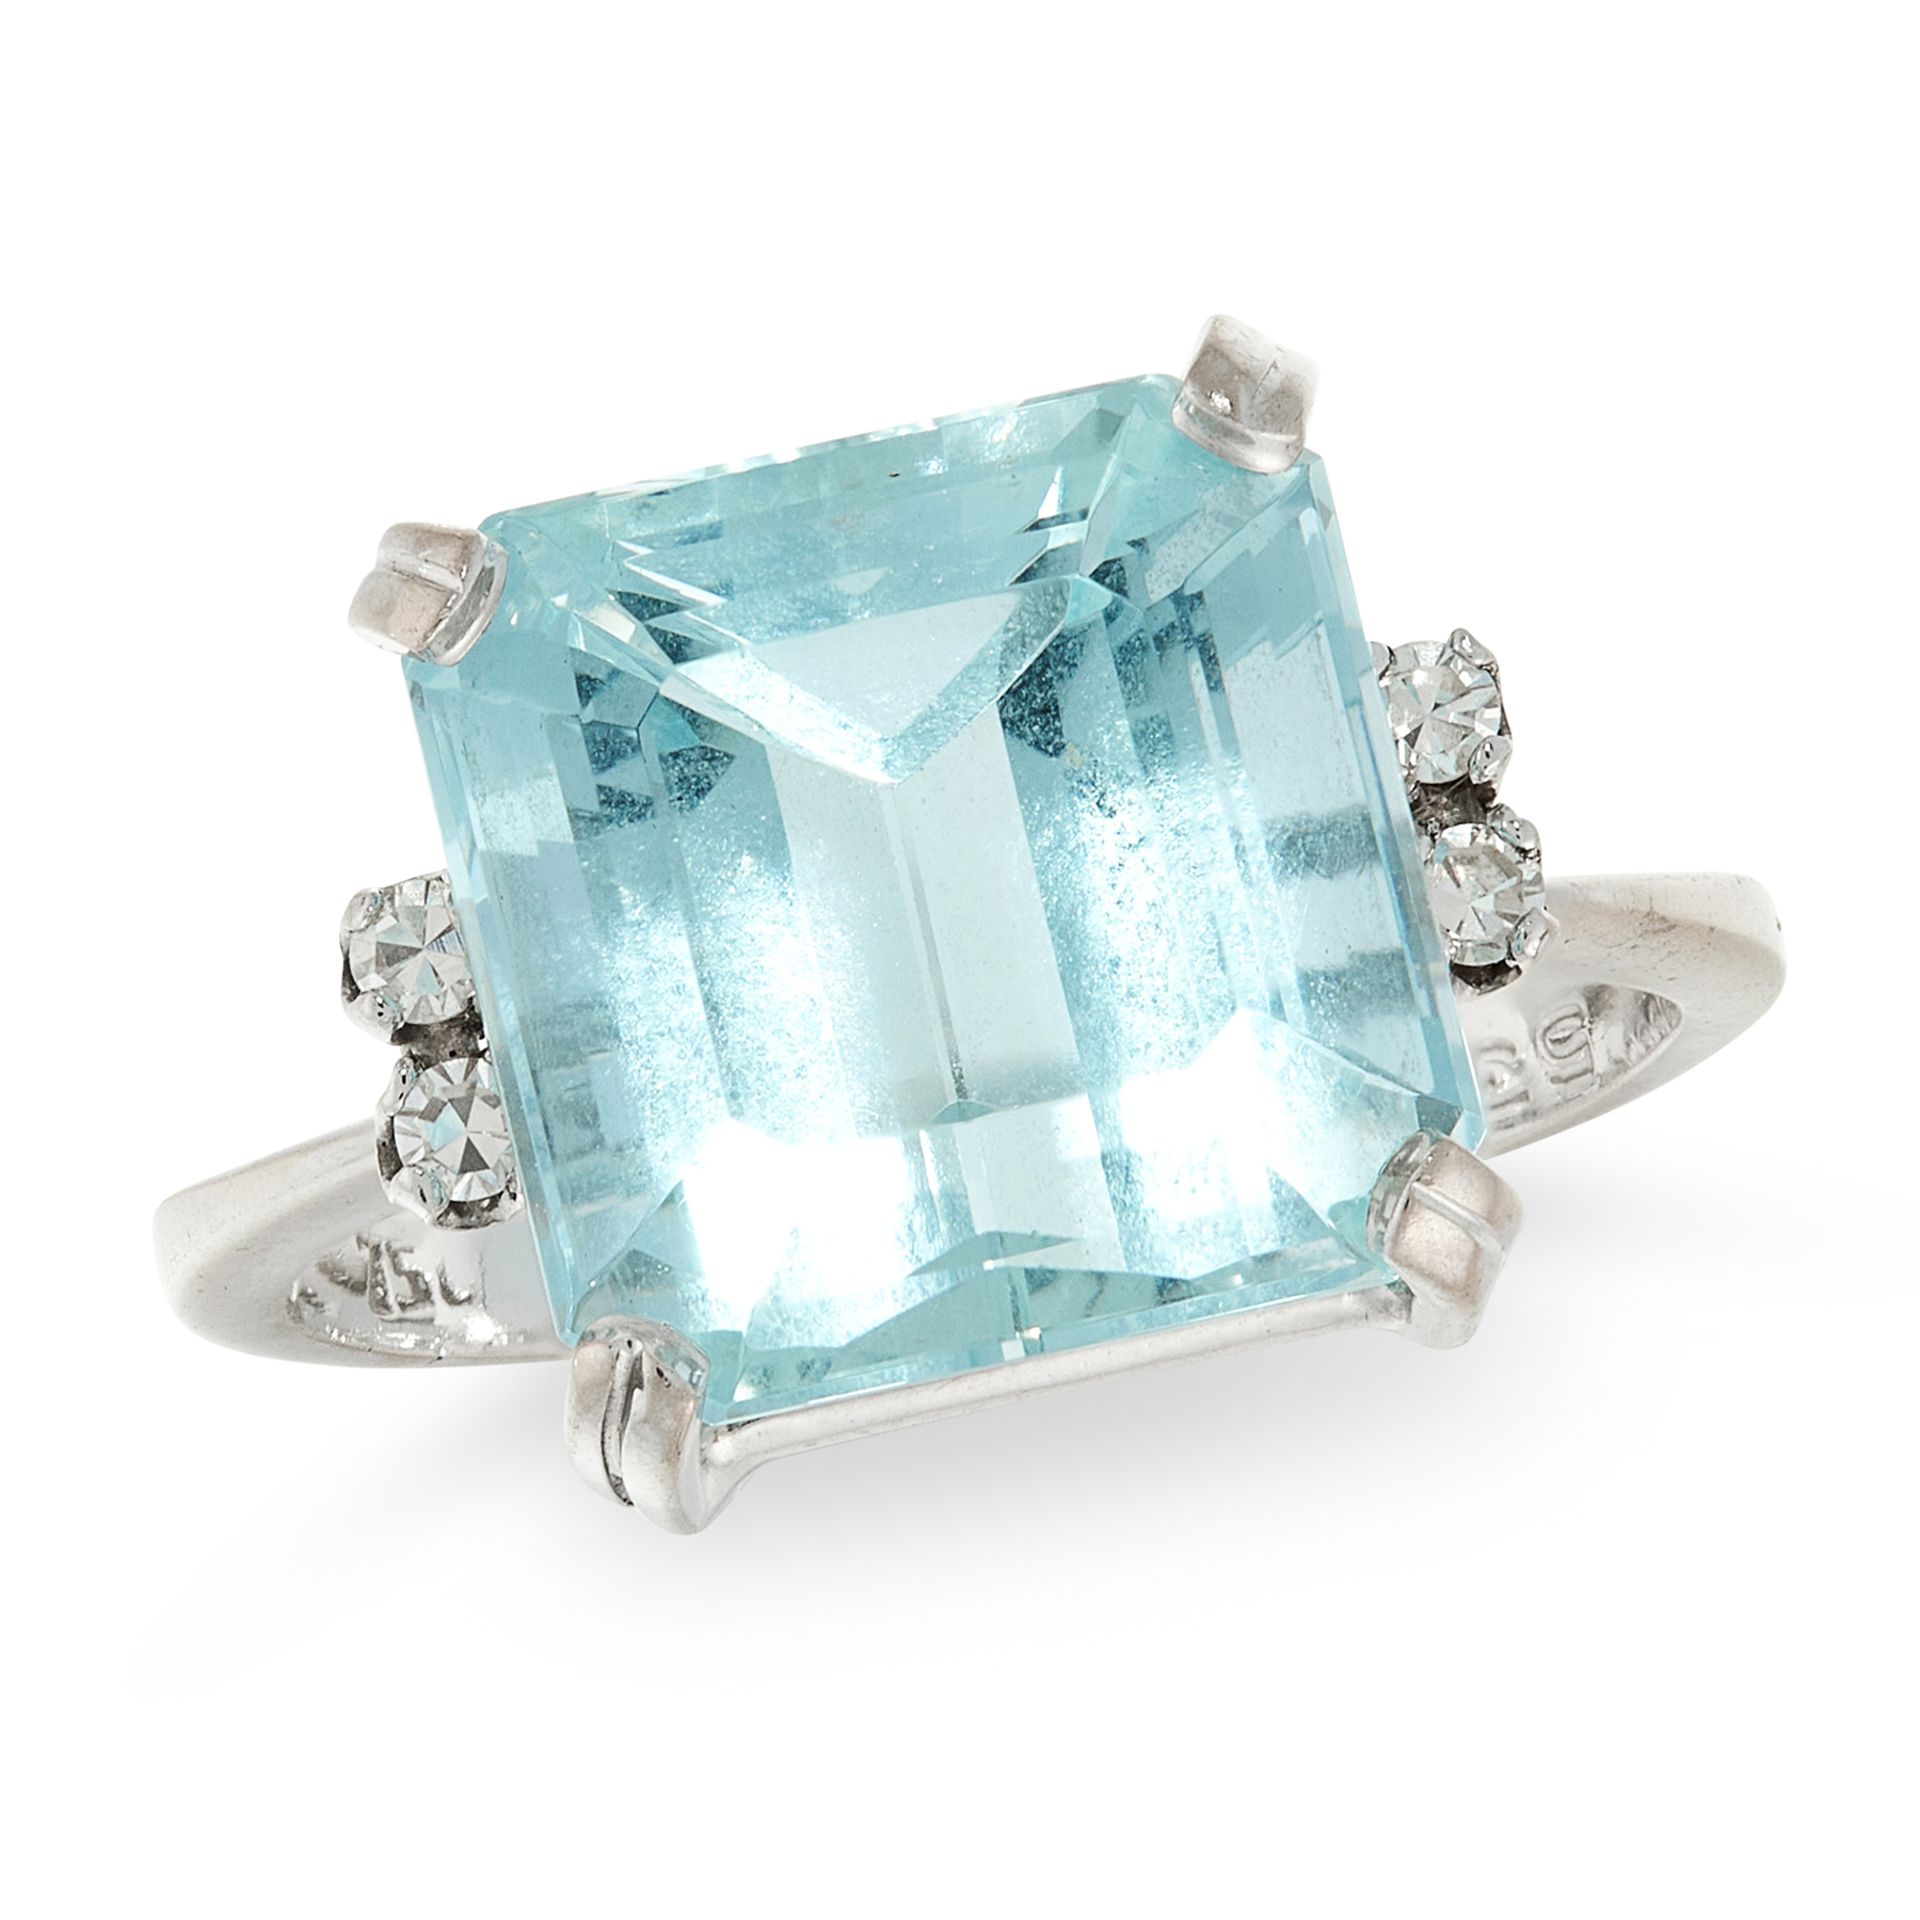 A VINTAGE AQUAMARINE AND DIAMOND RING, H STERN in 18ct white gold, set with a step cut aquamarine of